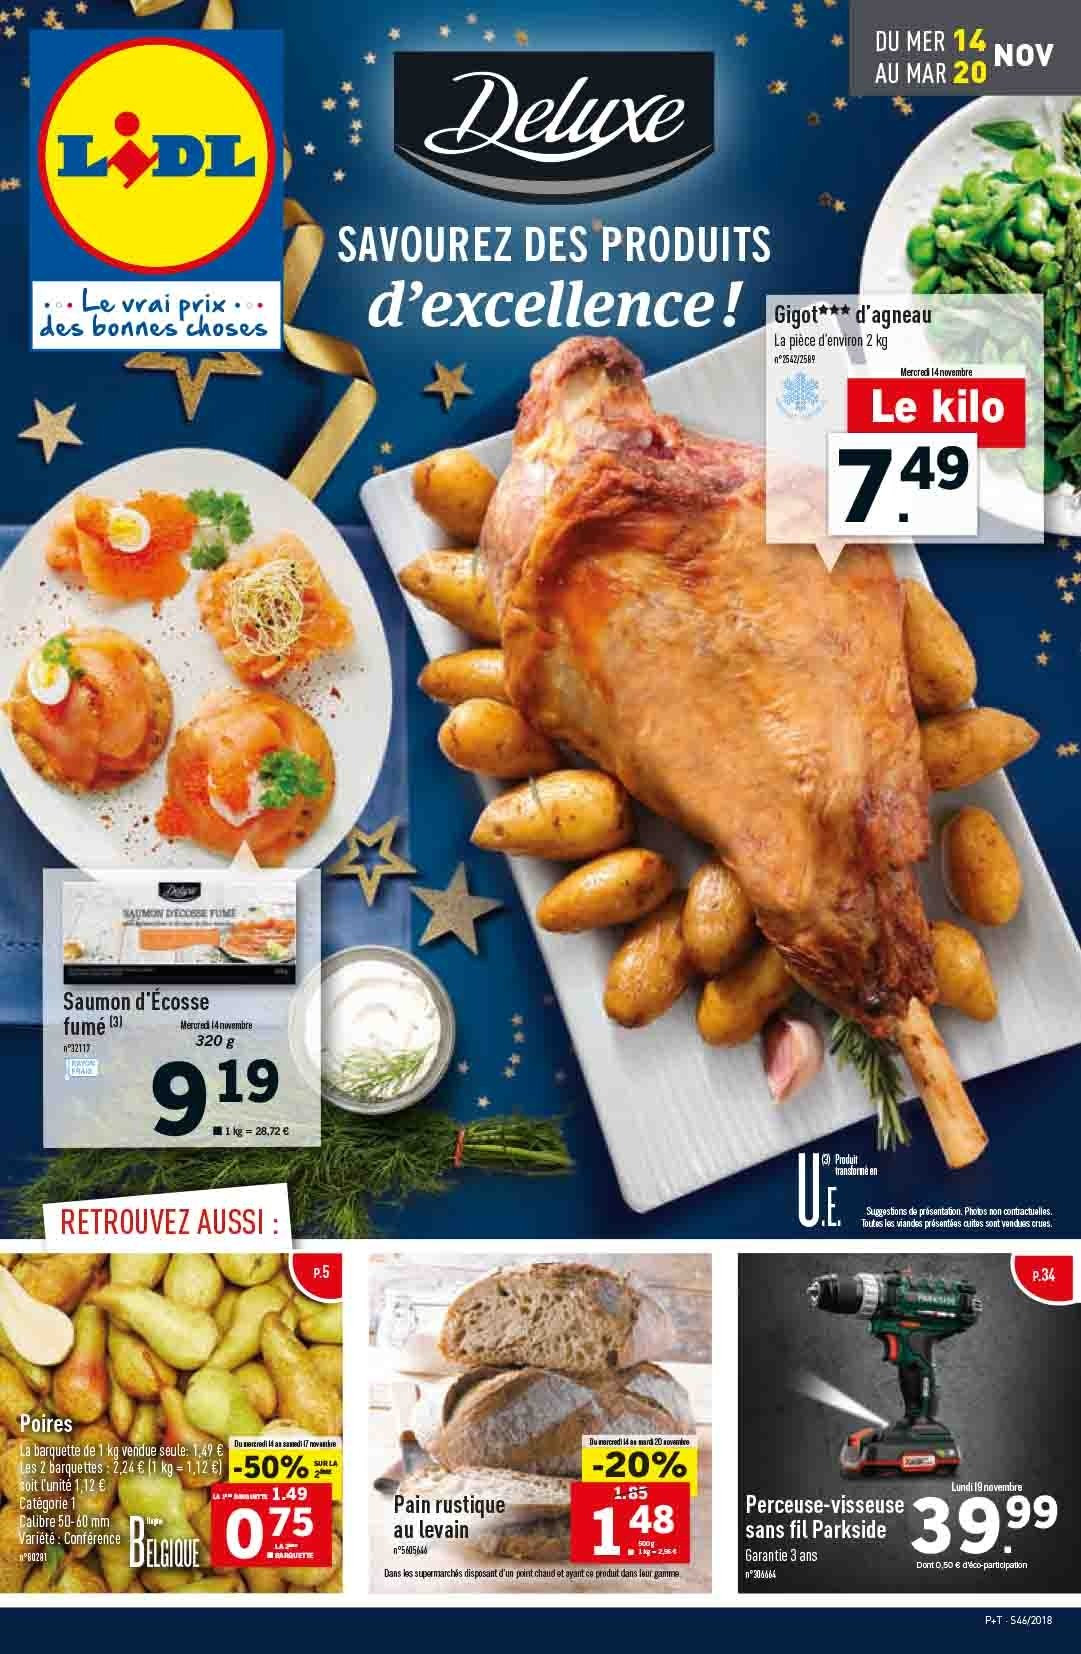 Catalogue Lidl - 14.11.2018 - 20.11.2018. Page 1.